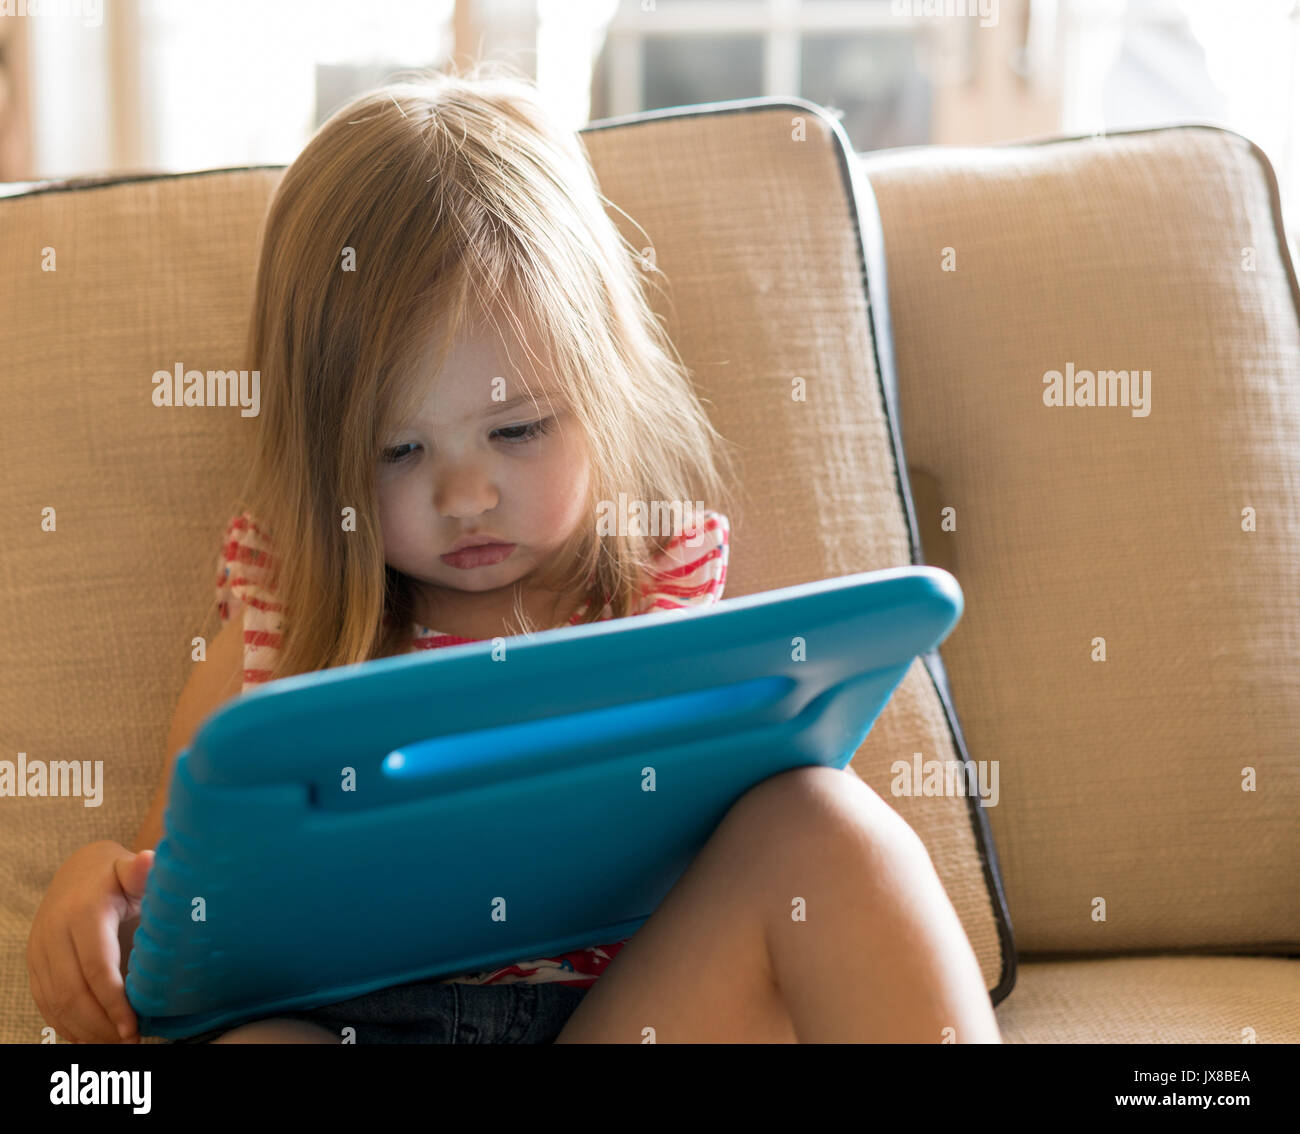 Preschool girl using a tablet computer at home - Stock Image